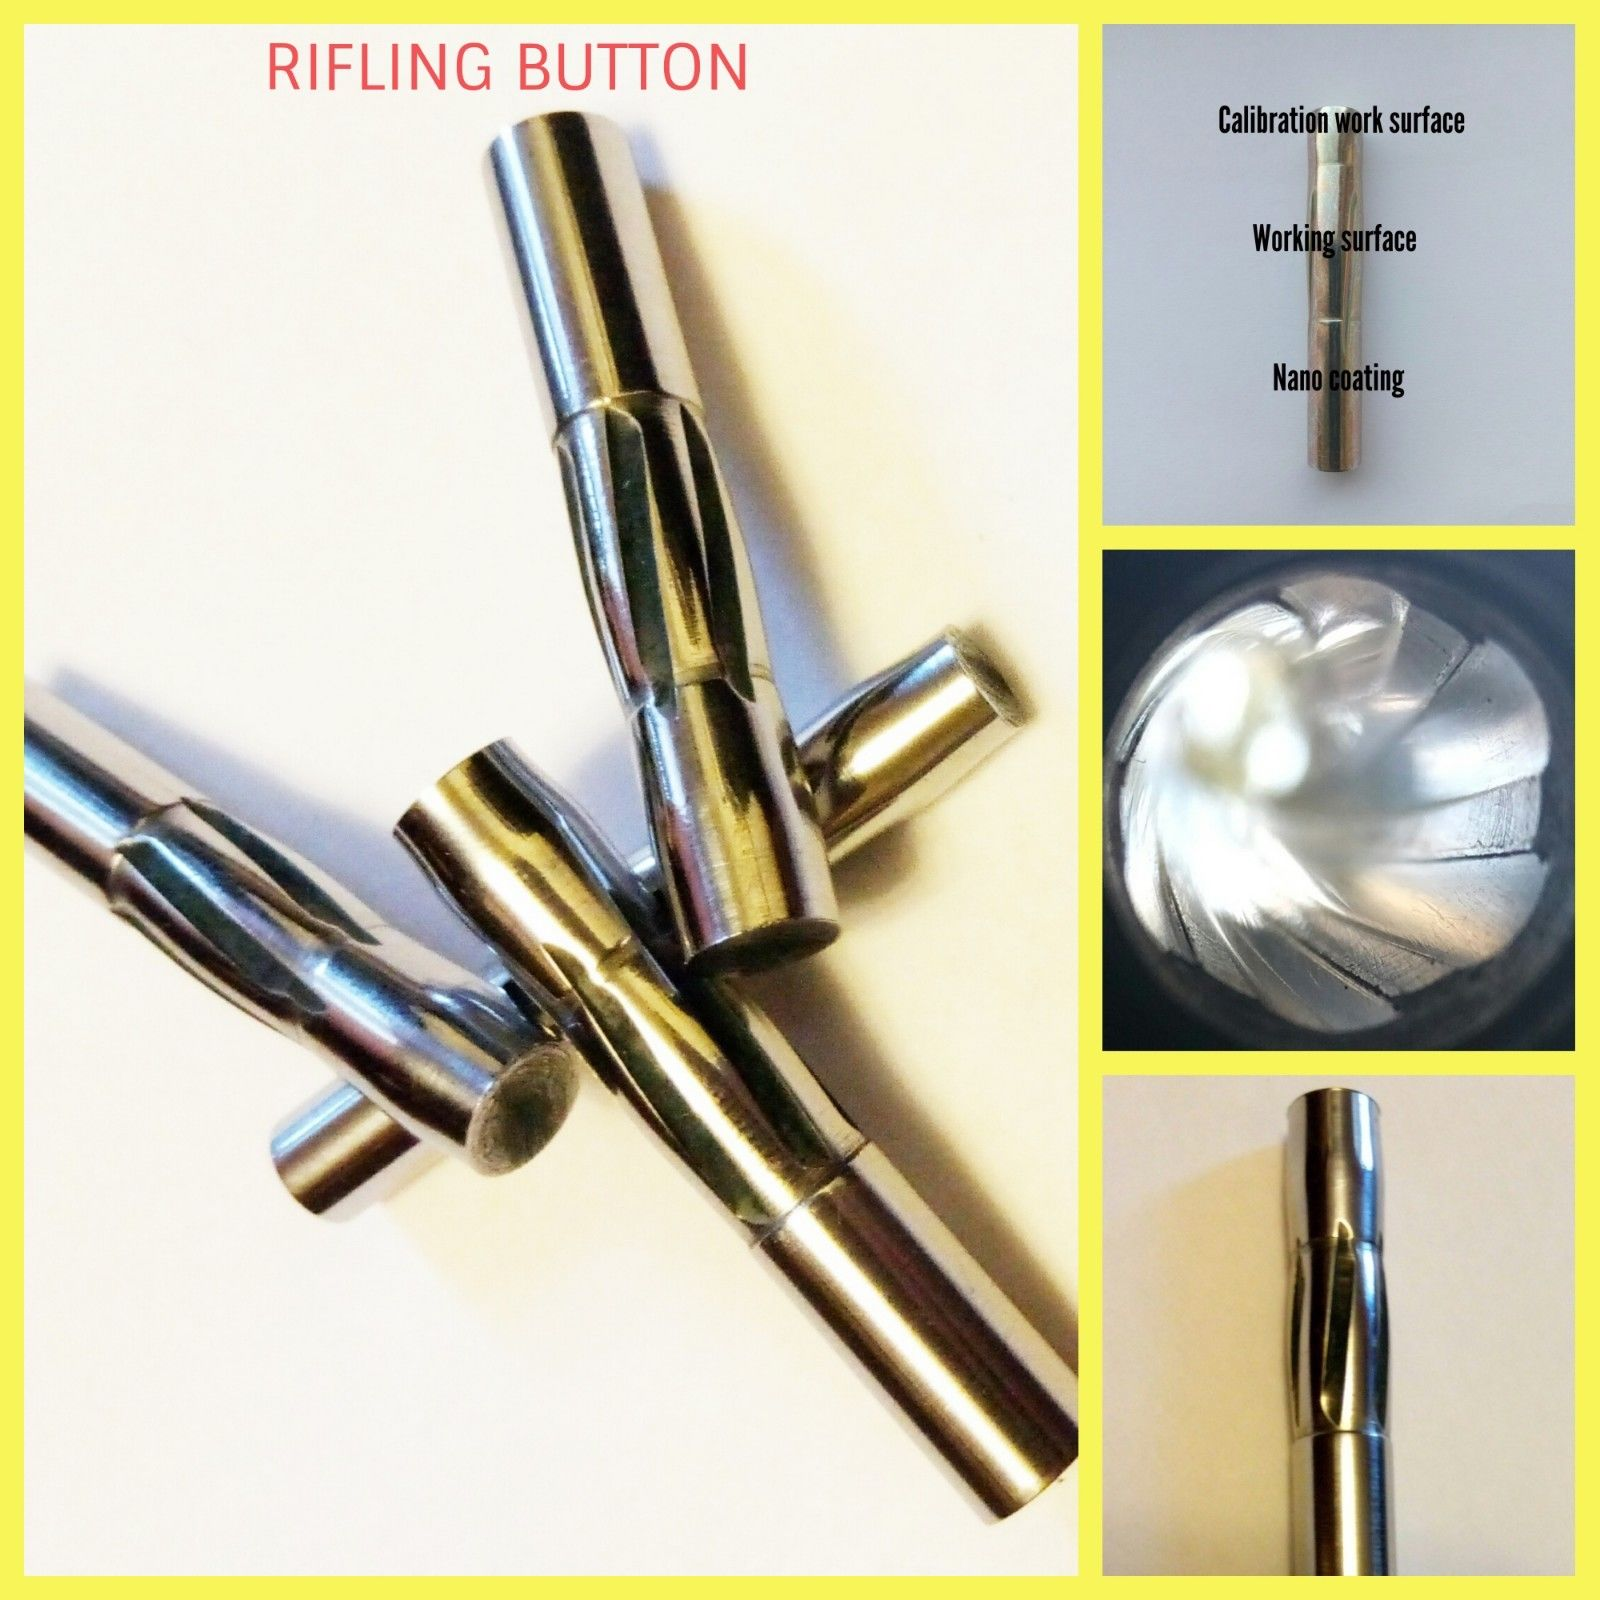 Rifling button combo 7.65x17 mm Browning